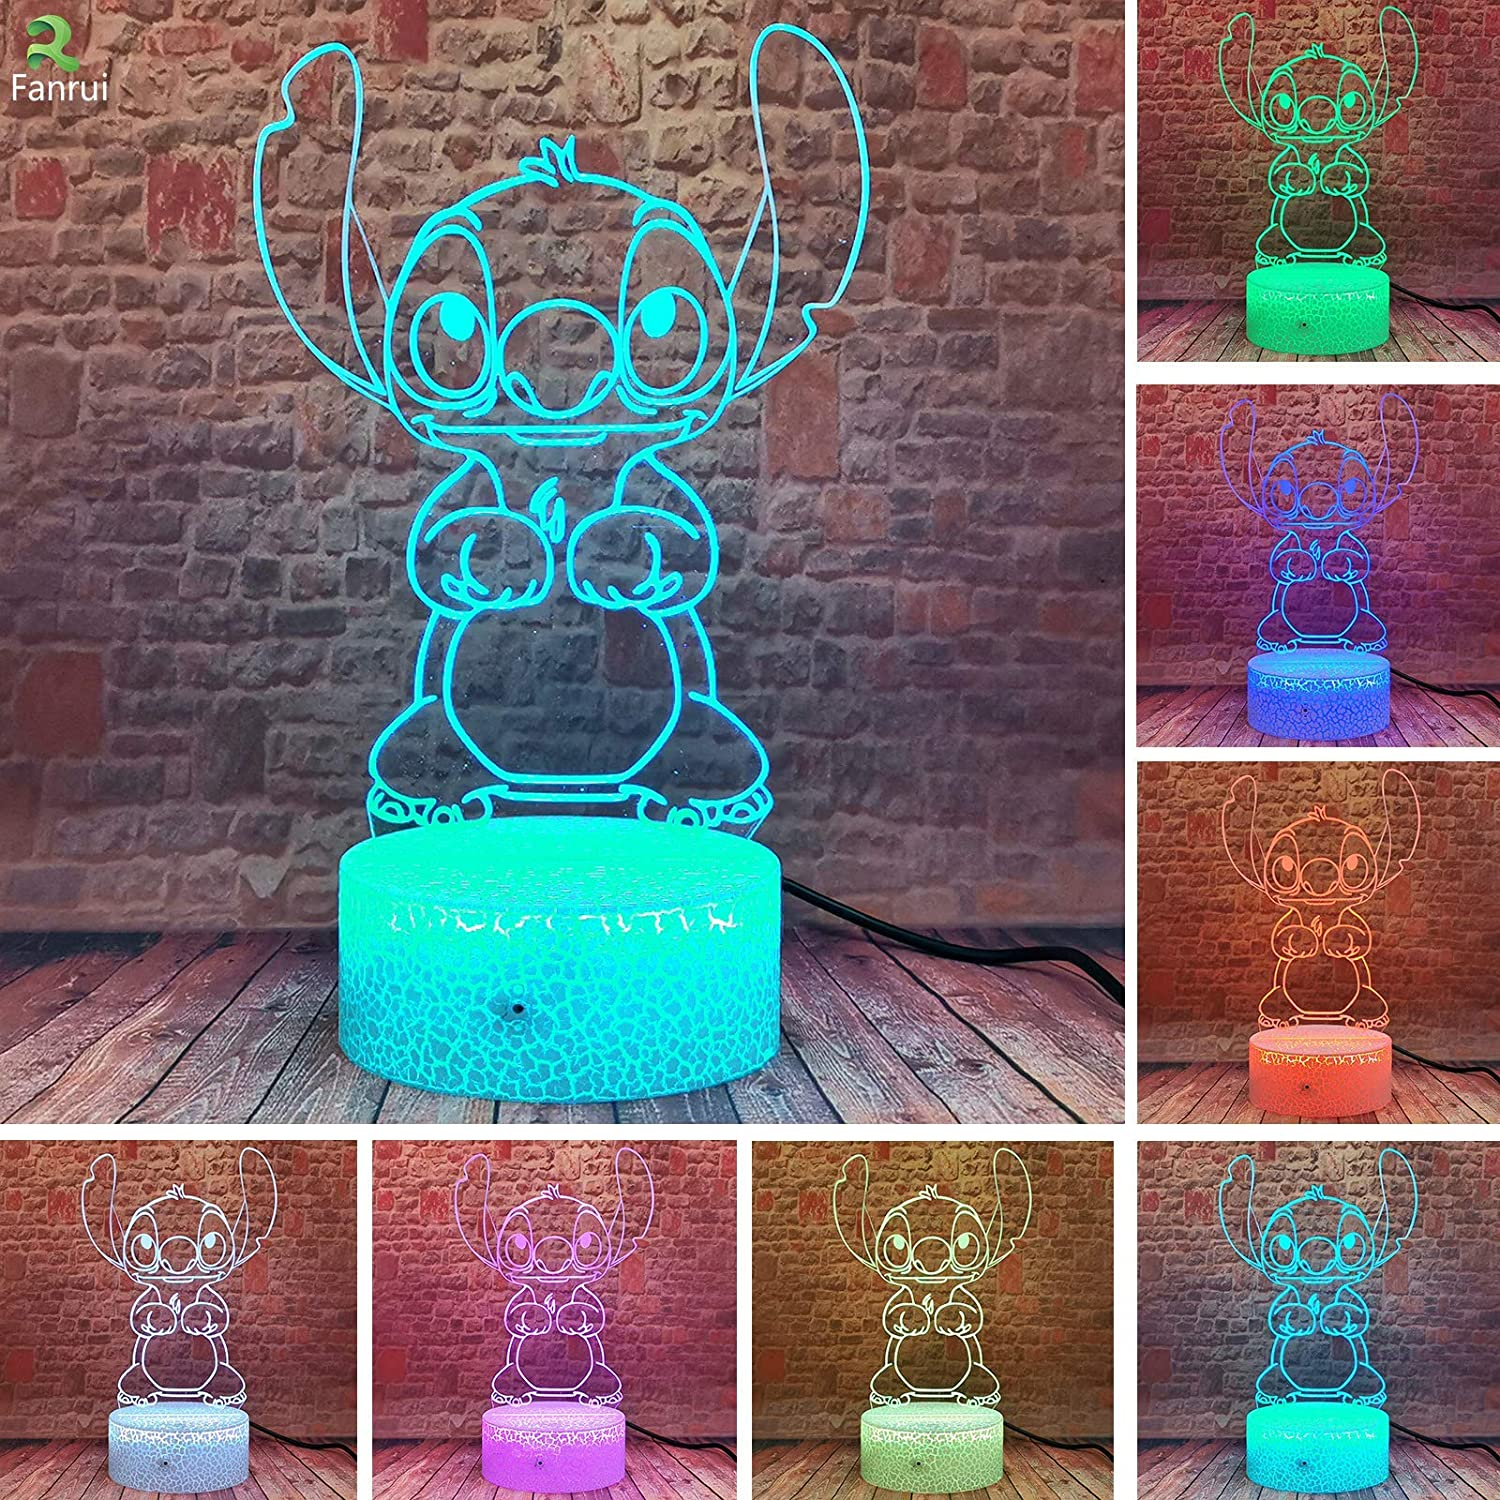 Cartoon - Lilo and Stitch - 3D Led Stitch Lamp - 7 Colors Smart Touch Remote Control Night Light - Home Bedroom Table Family Hot Decor - Child Kids Baby Xmas Birthday Toys